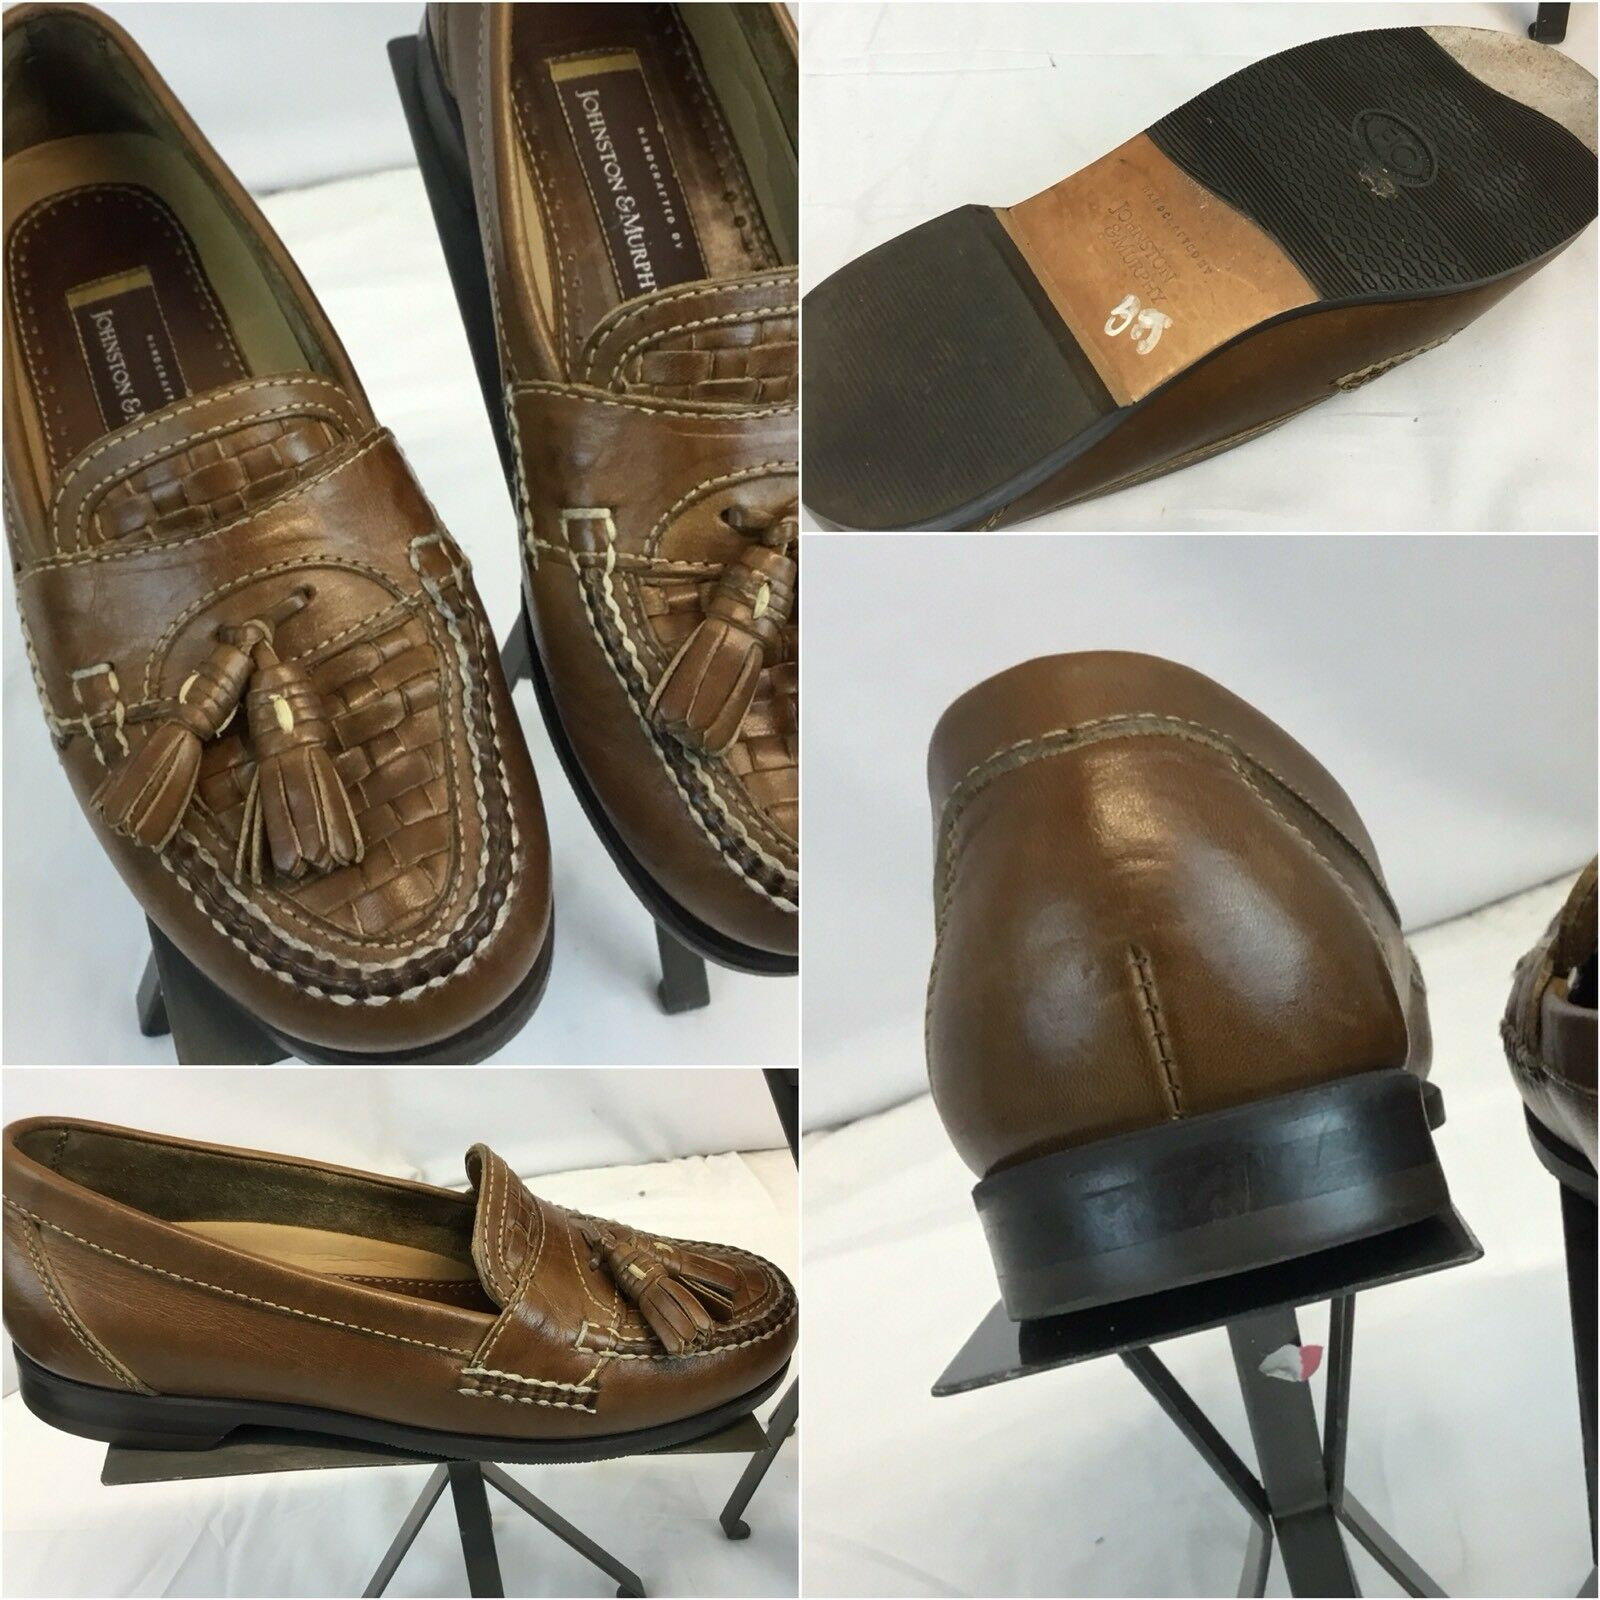 Johnston Murphy Loafers Slip On shoes Sz 8.5 Brown Tassels Brazil Mint YGI D8